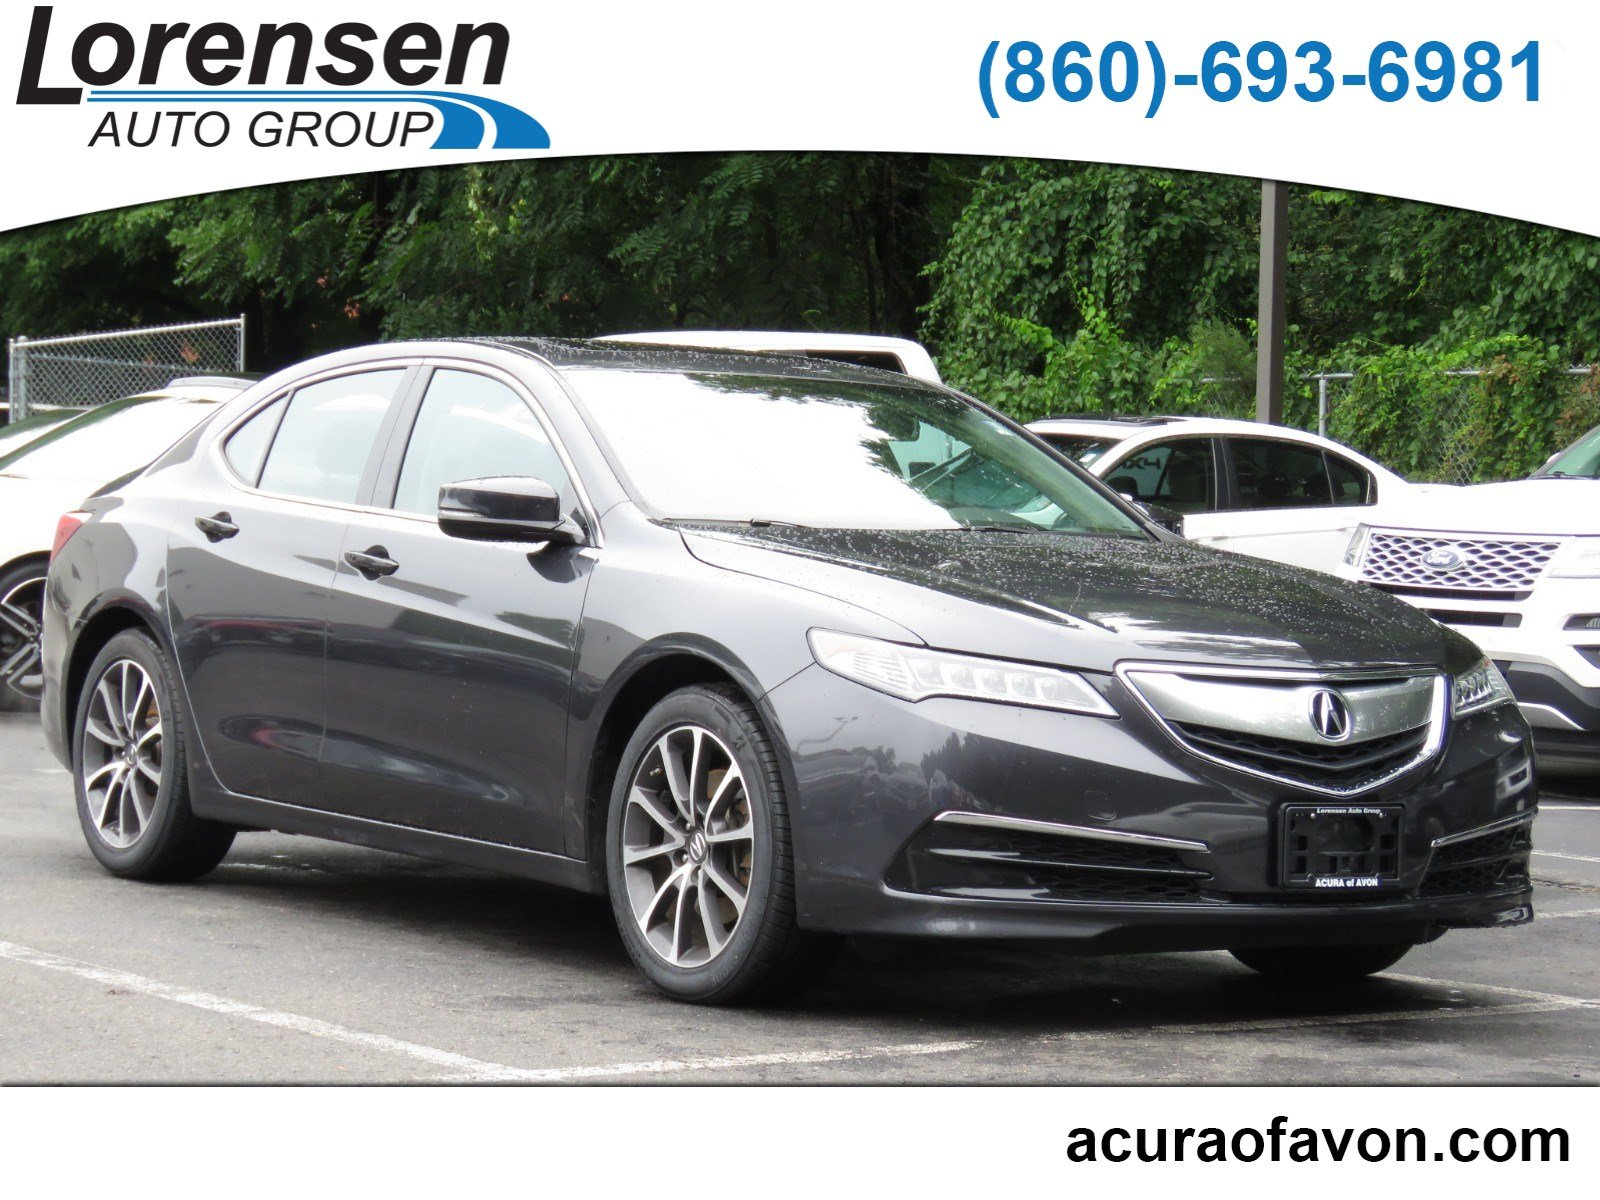 Certified PreOwned Acura TLX V Tech Dr Car In Watertown - Pre own acura